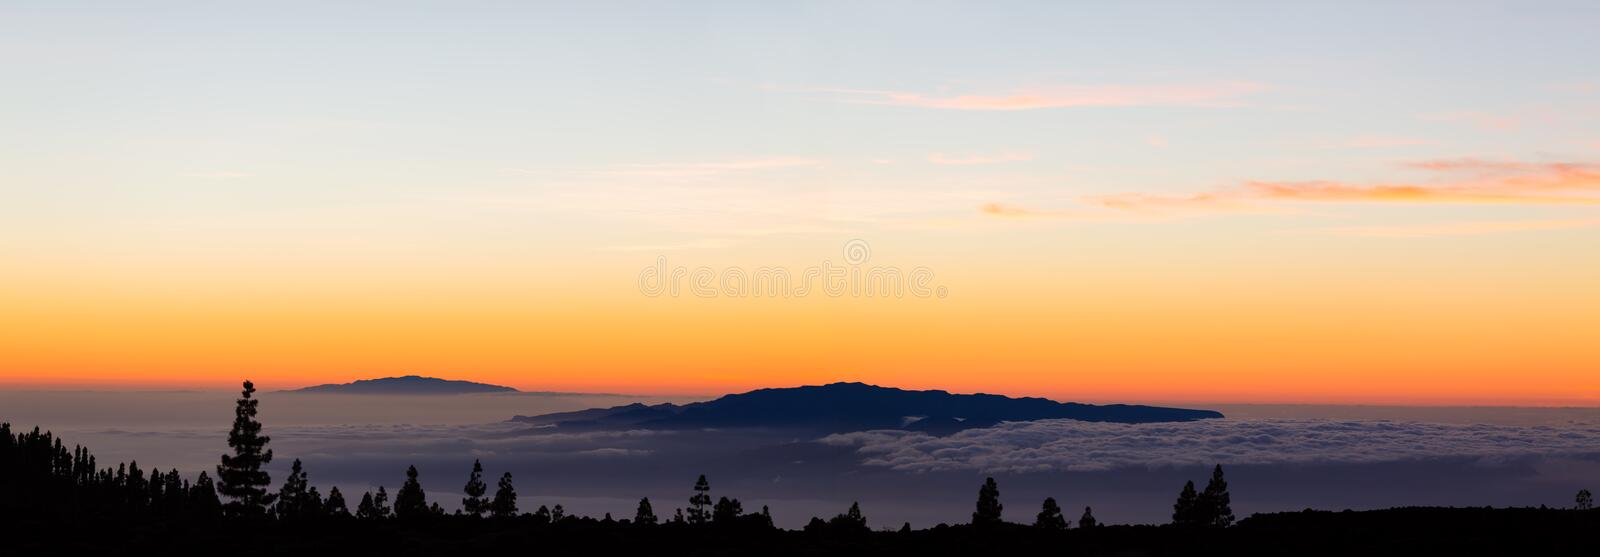 Looking at inspirational landscape ocean view. Beautiful sunset from Tenerife island. Panoramic view with mountains on islands and clouds over ocean and sunset royalty free stock photo